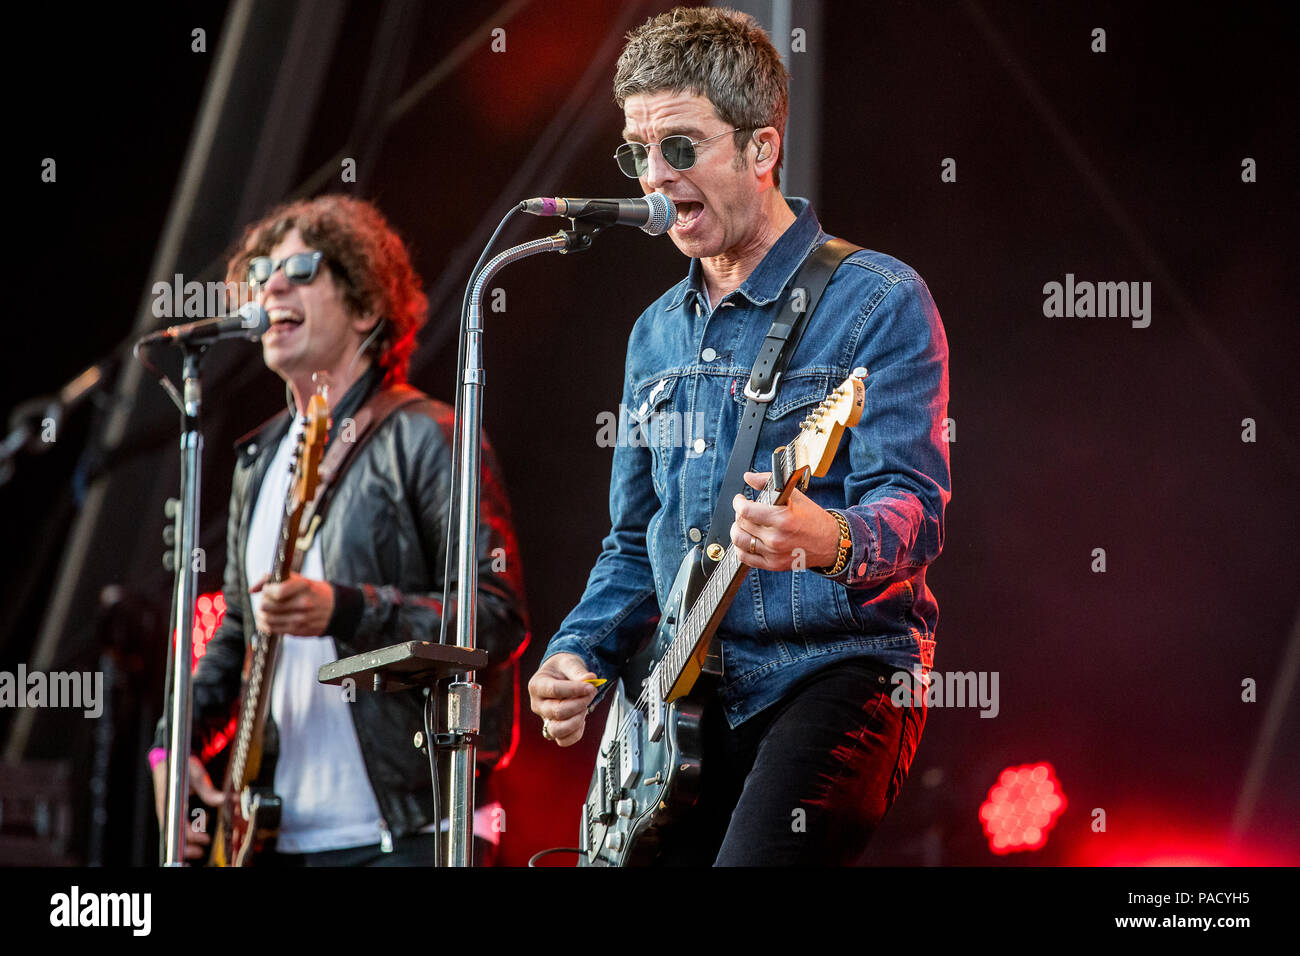 Noel Gallagher performs live on stage with Noel Gallagher's High Flying Birds at the Tramlines Festival in Sheffield, UK, 2018. Stock Photo